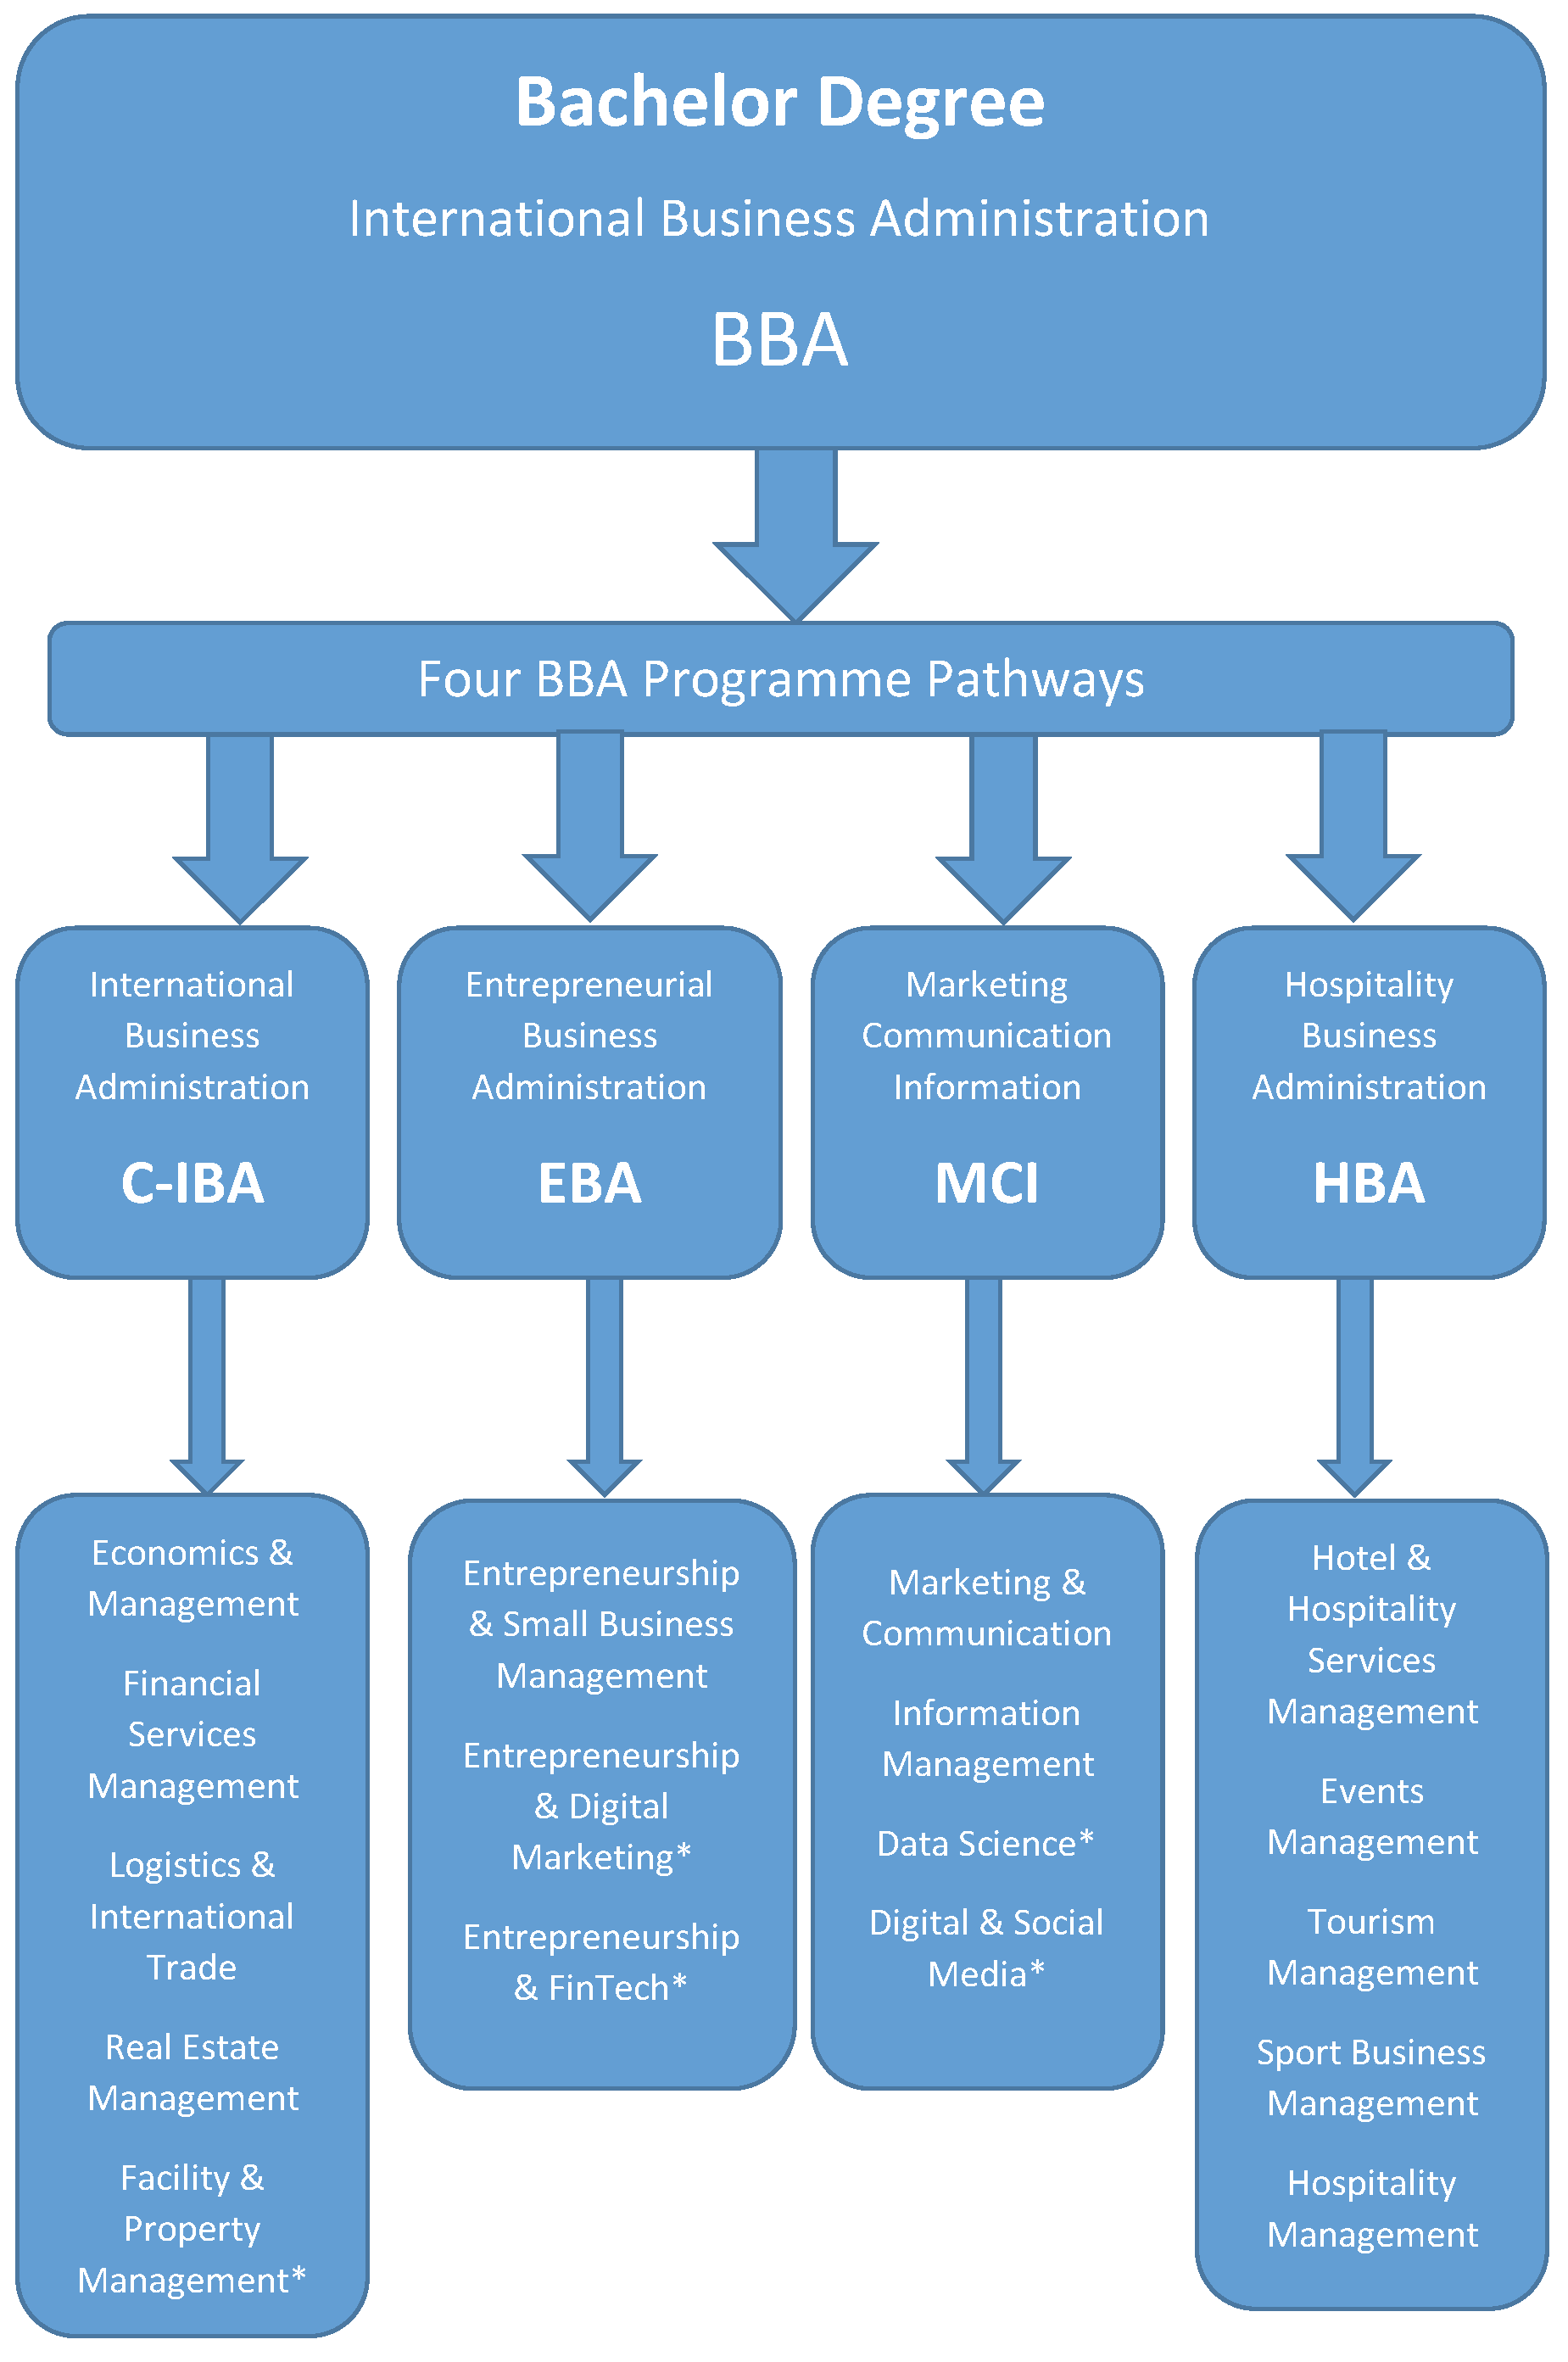 4 Pathways of BBA Programme